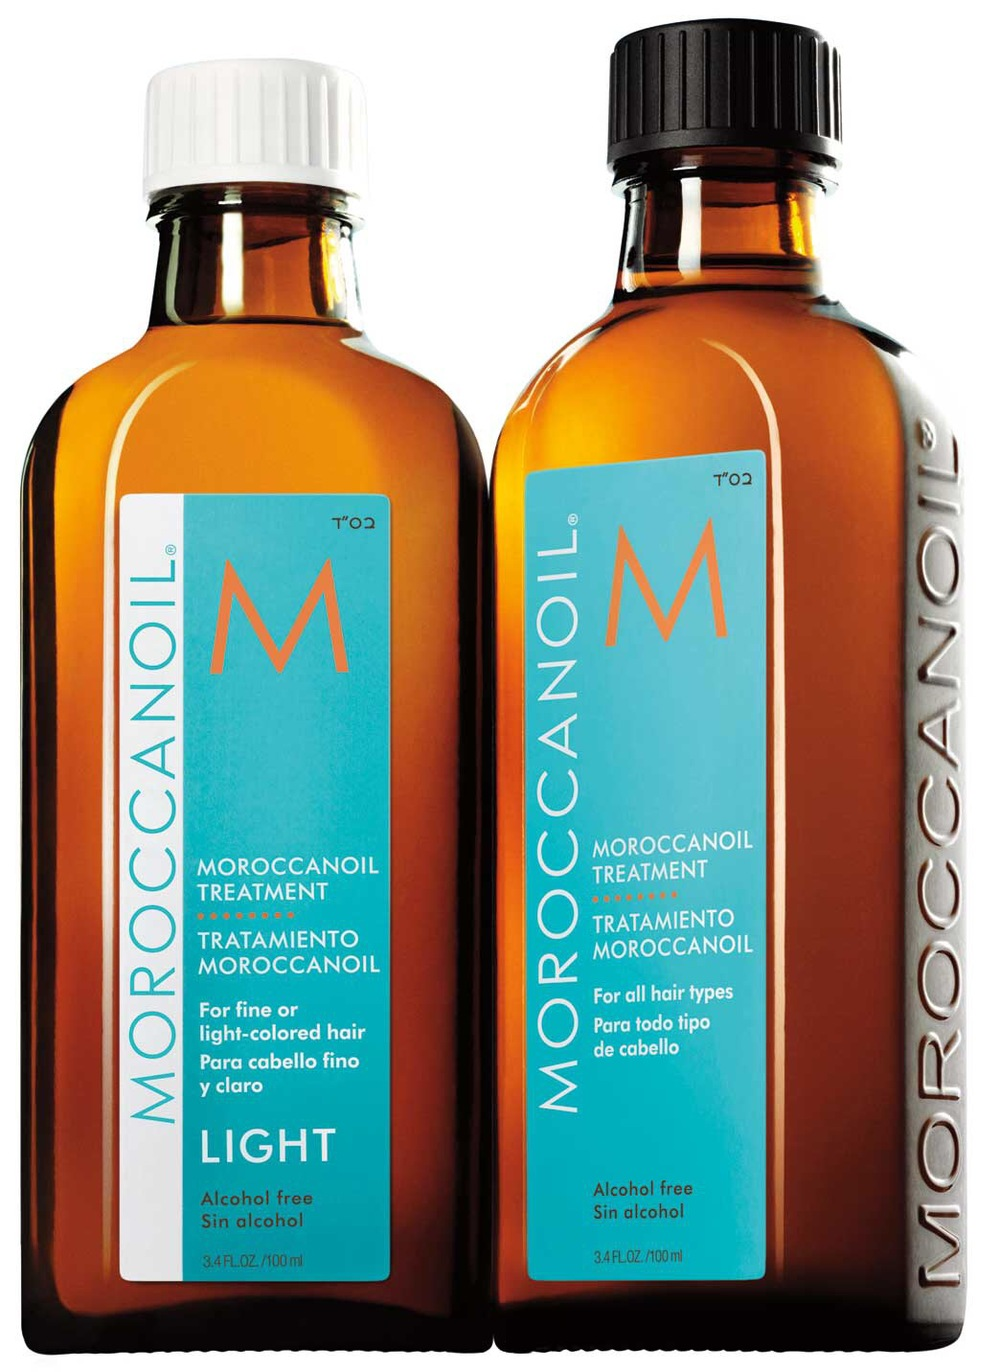 Moroccan Oil is the perfect formula to seal the deal when hairstyling and to keep the frizz at bay! Use a dime size portion to tame your fly-aways, mend your split ends and ensure that your hair is hydrated and silky in the heat-Plus the antioxidant enriched formula protects your tresses from sun damage! ($45 professional Product)     Want to order any of the 2 professional products? Contact  info@platinumimagesstyling.com